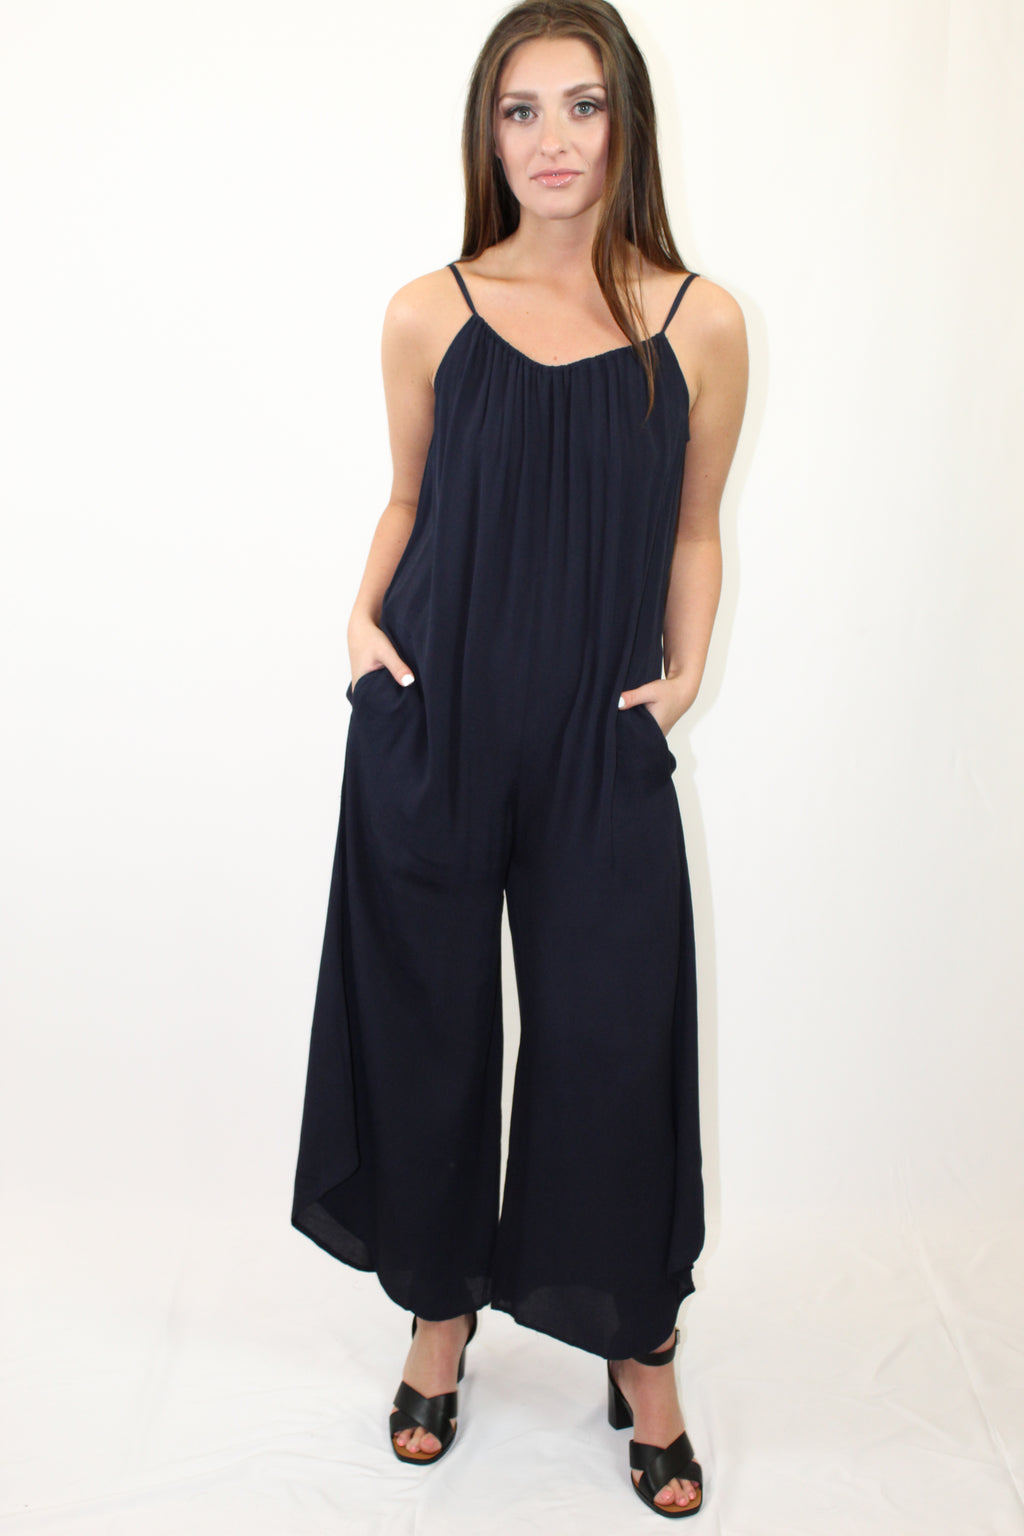 "How To Wear: Our favorite designer jumpsuit for the season! You will never be so comfortable, yet chic and on trend! With an adjustable neckline and pockets you will wish we had one in every color! Details: Runs generously. Recommend sizing down. High-low leg hemline. Model is 5'8"" and wearing a S."